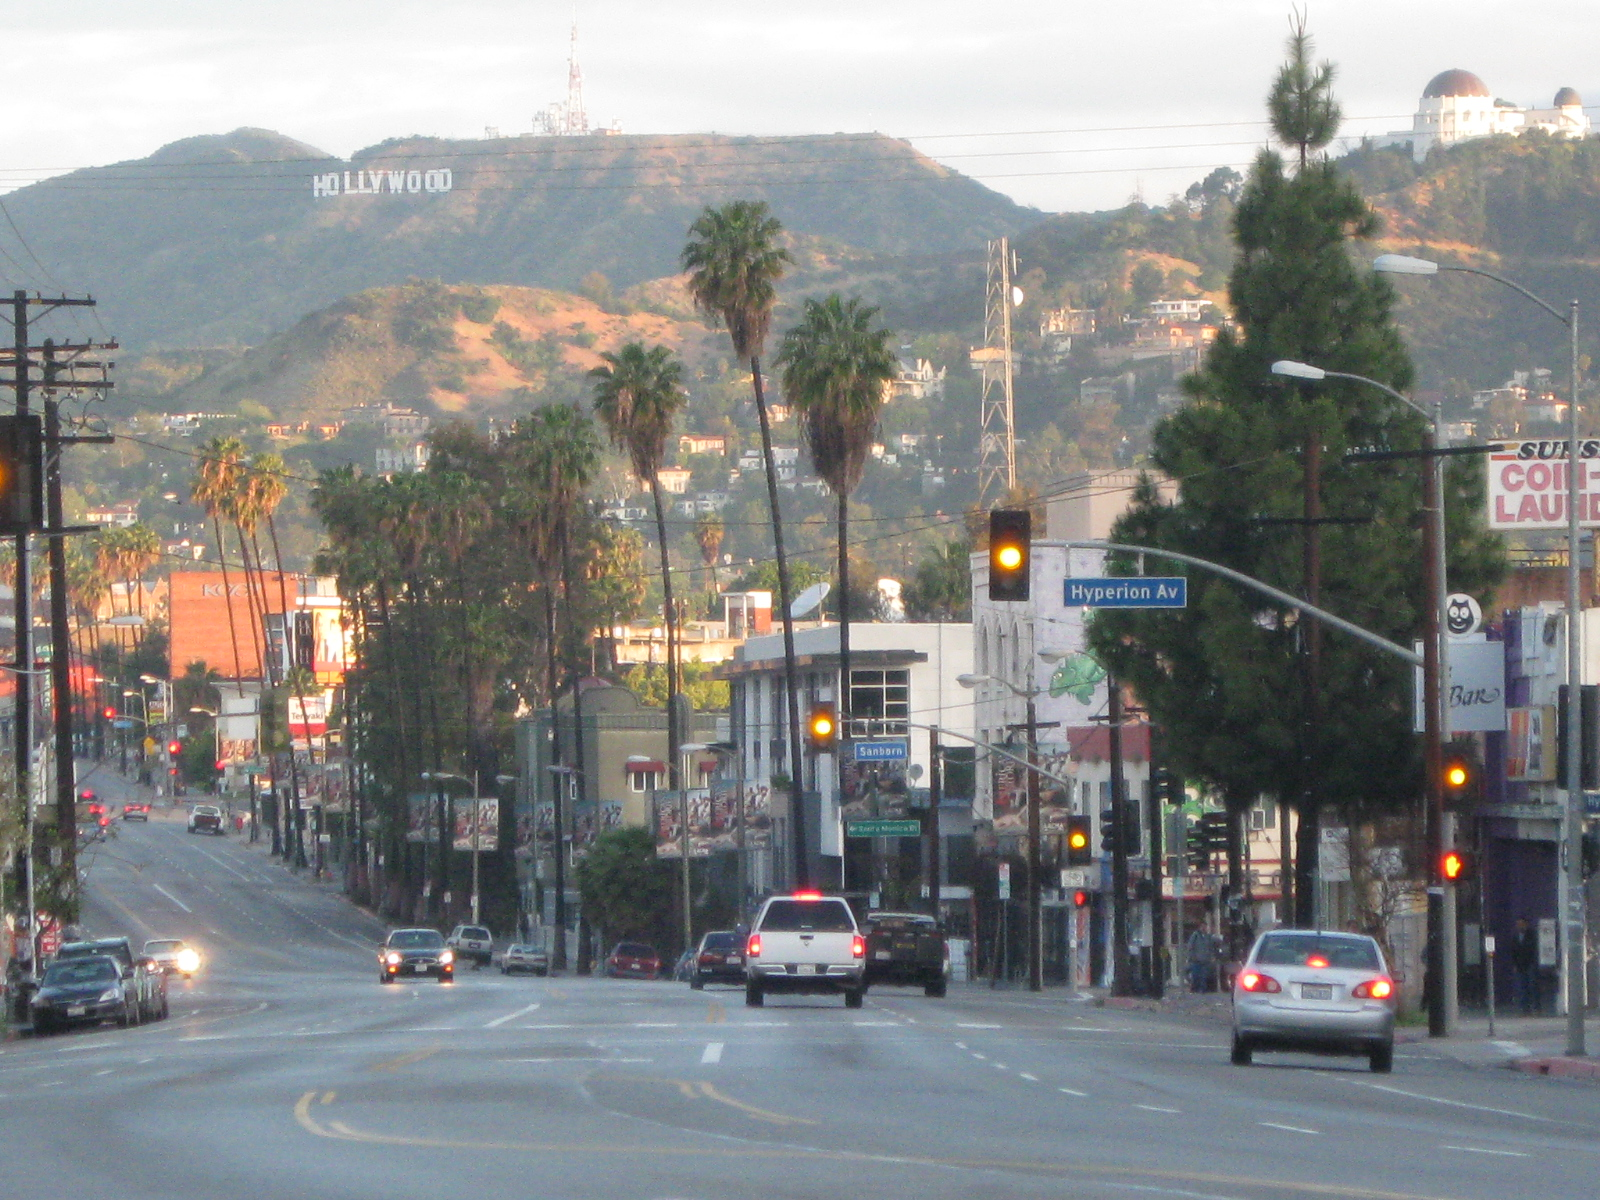 Hollywood Sign Sunset Boulevard